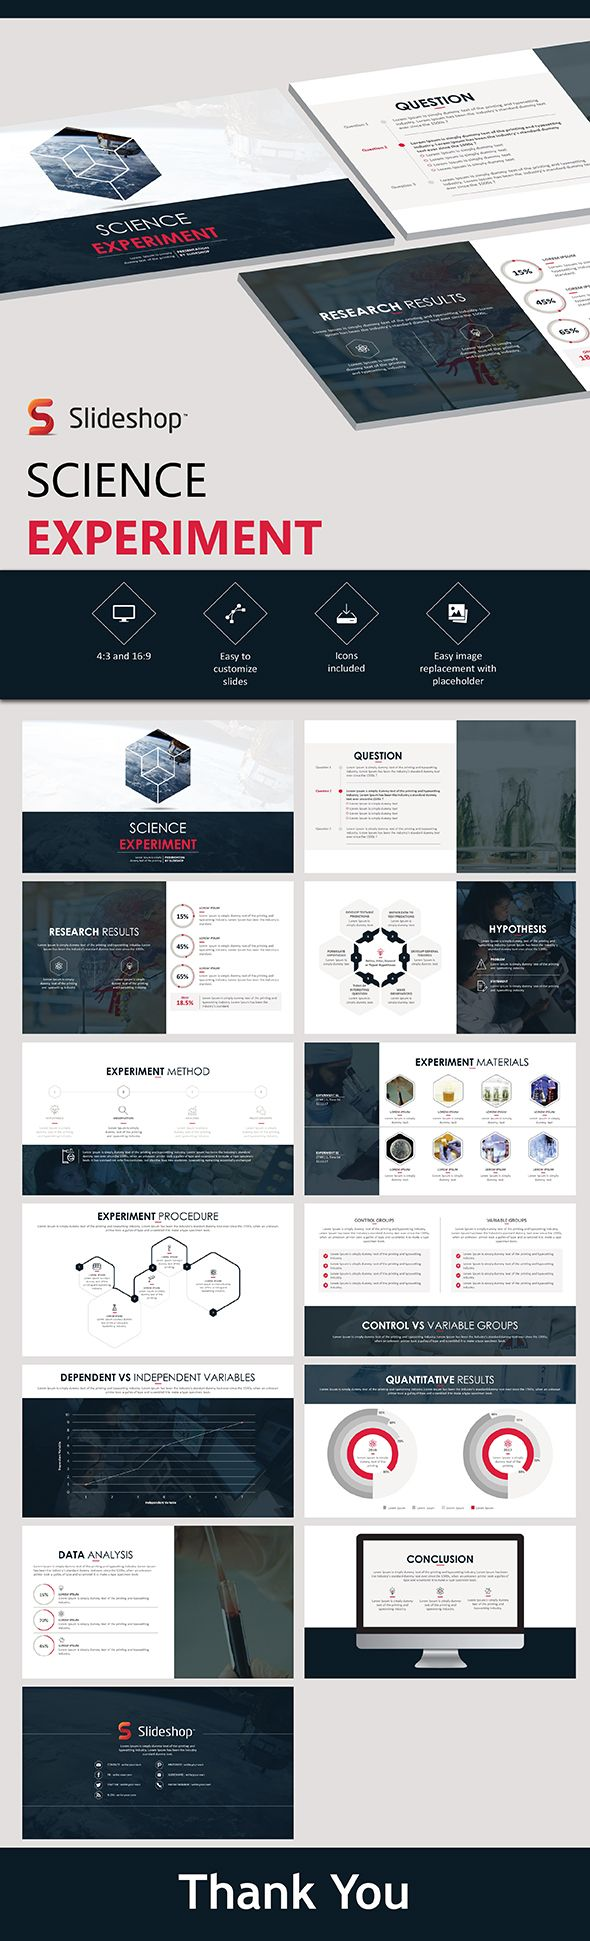 science experiment powerpoint template powerpoint templates